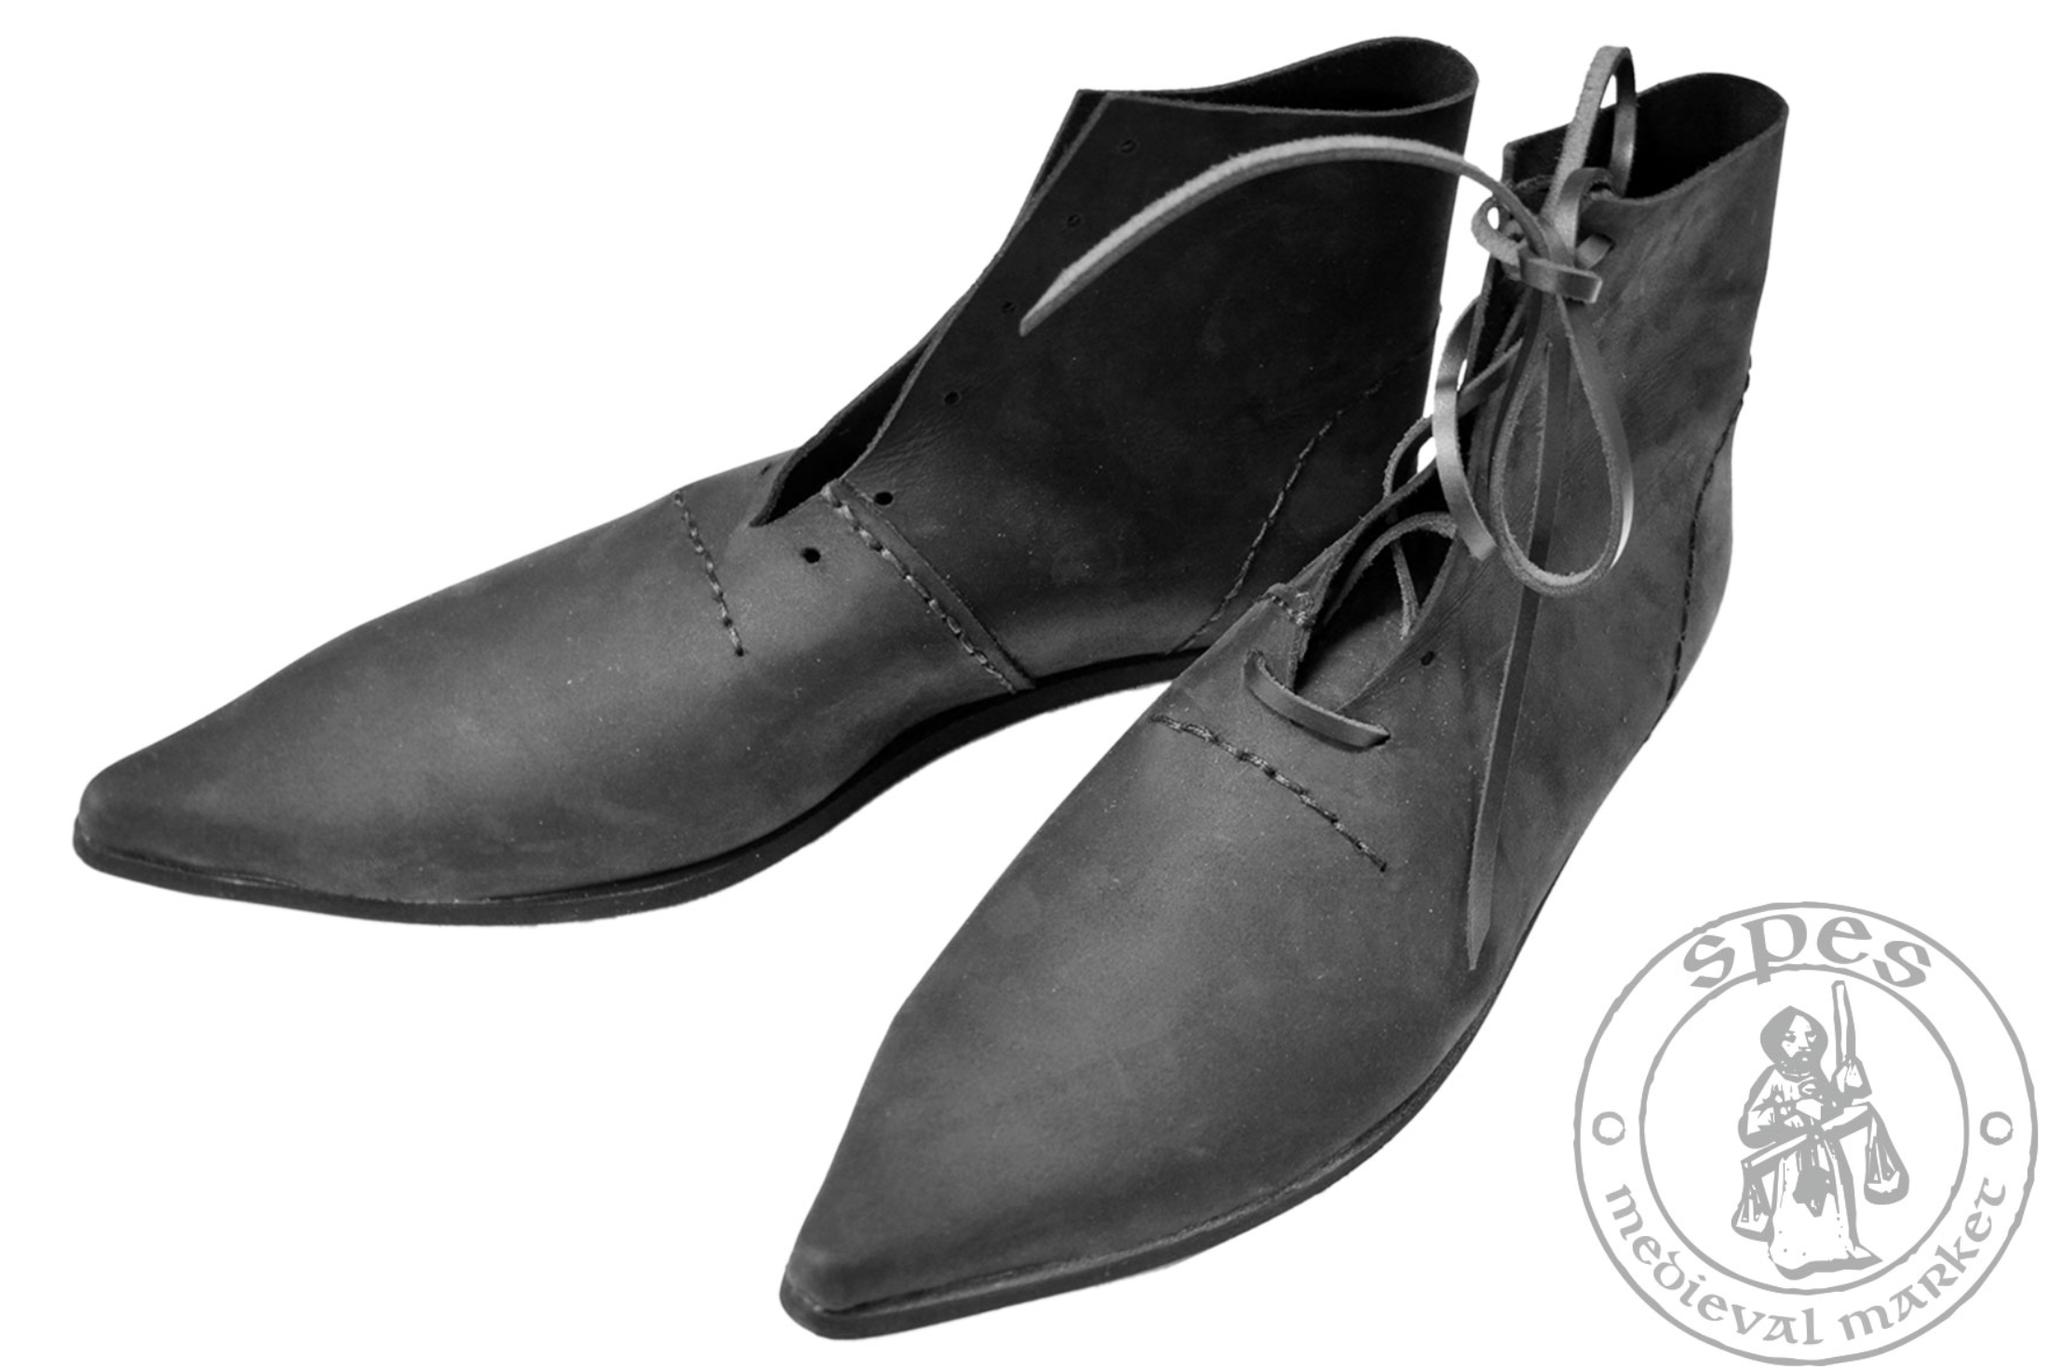 Chaussures Homme : MSS1431 - 210 €